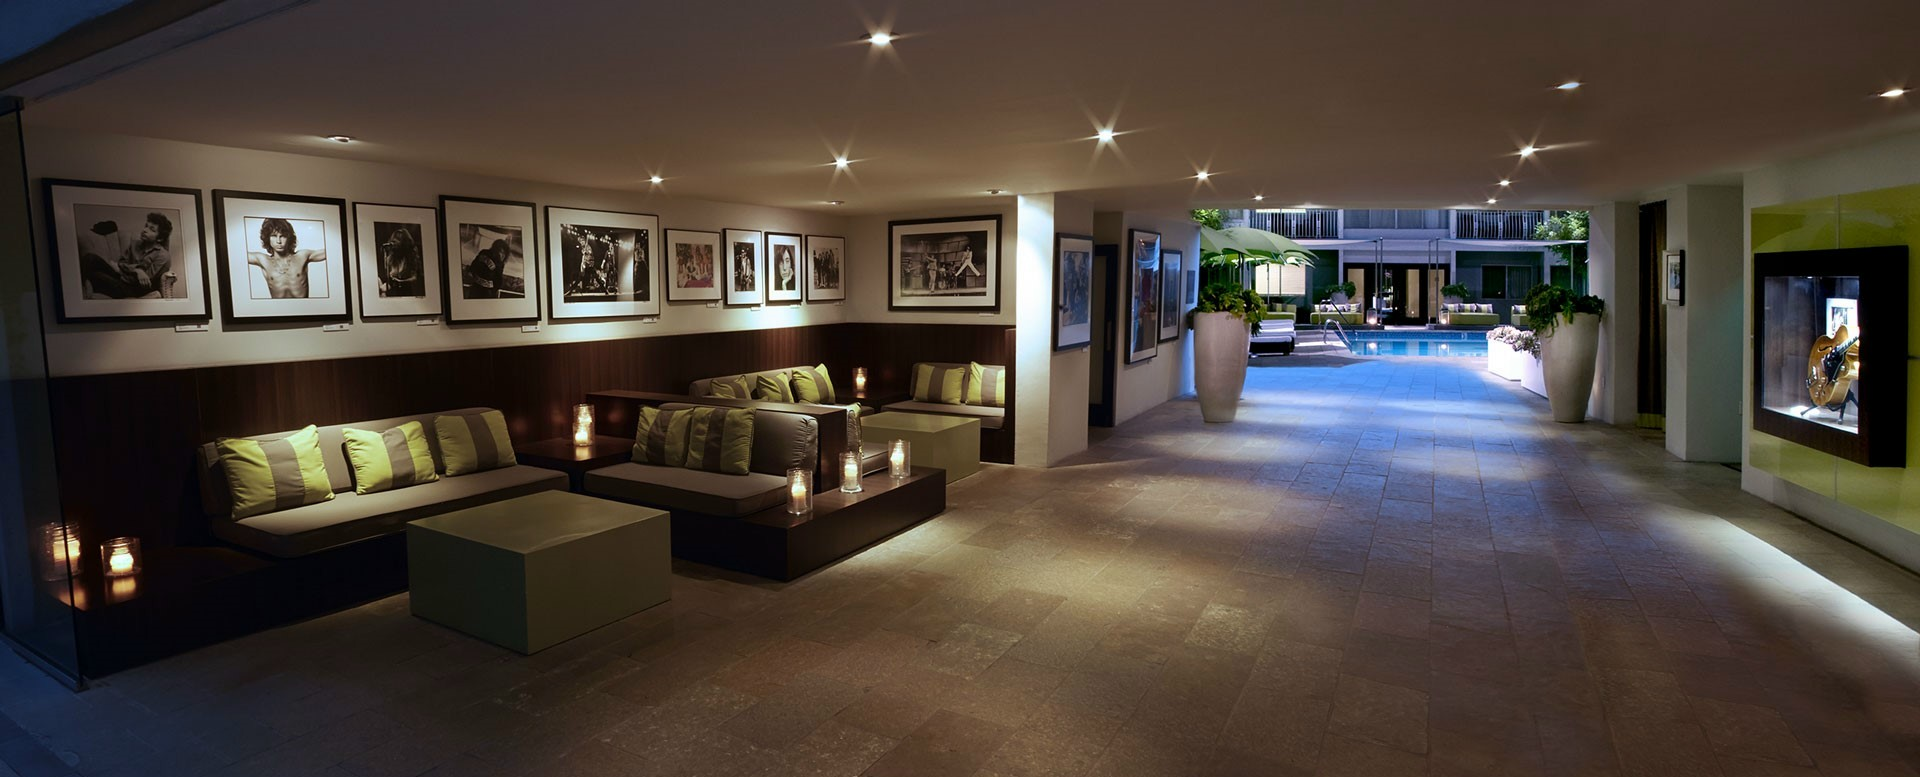 Sunset Marquis Hotel - Lobby